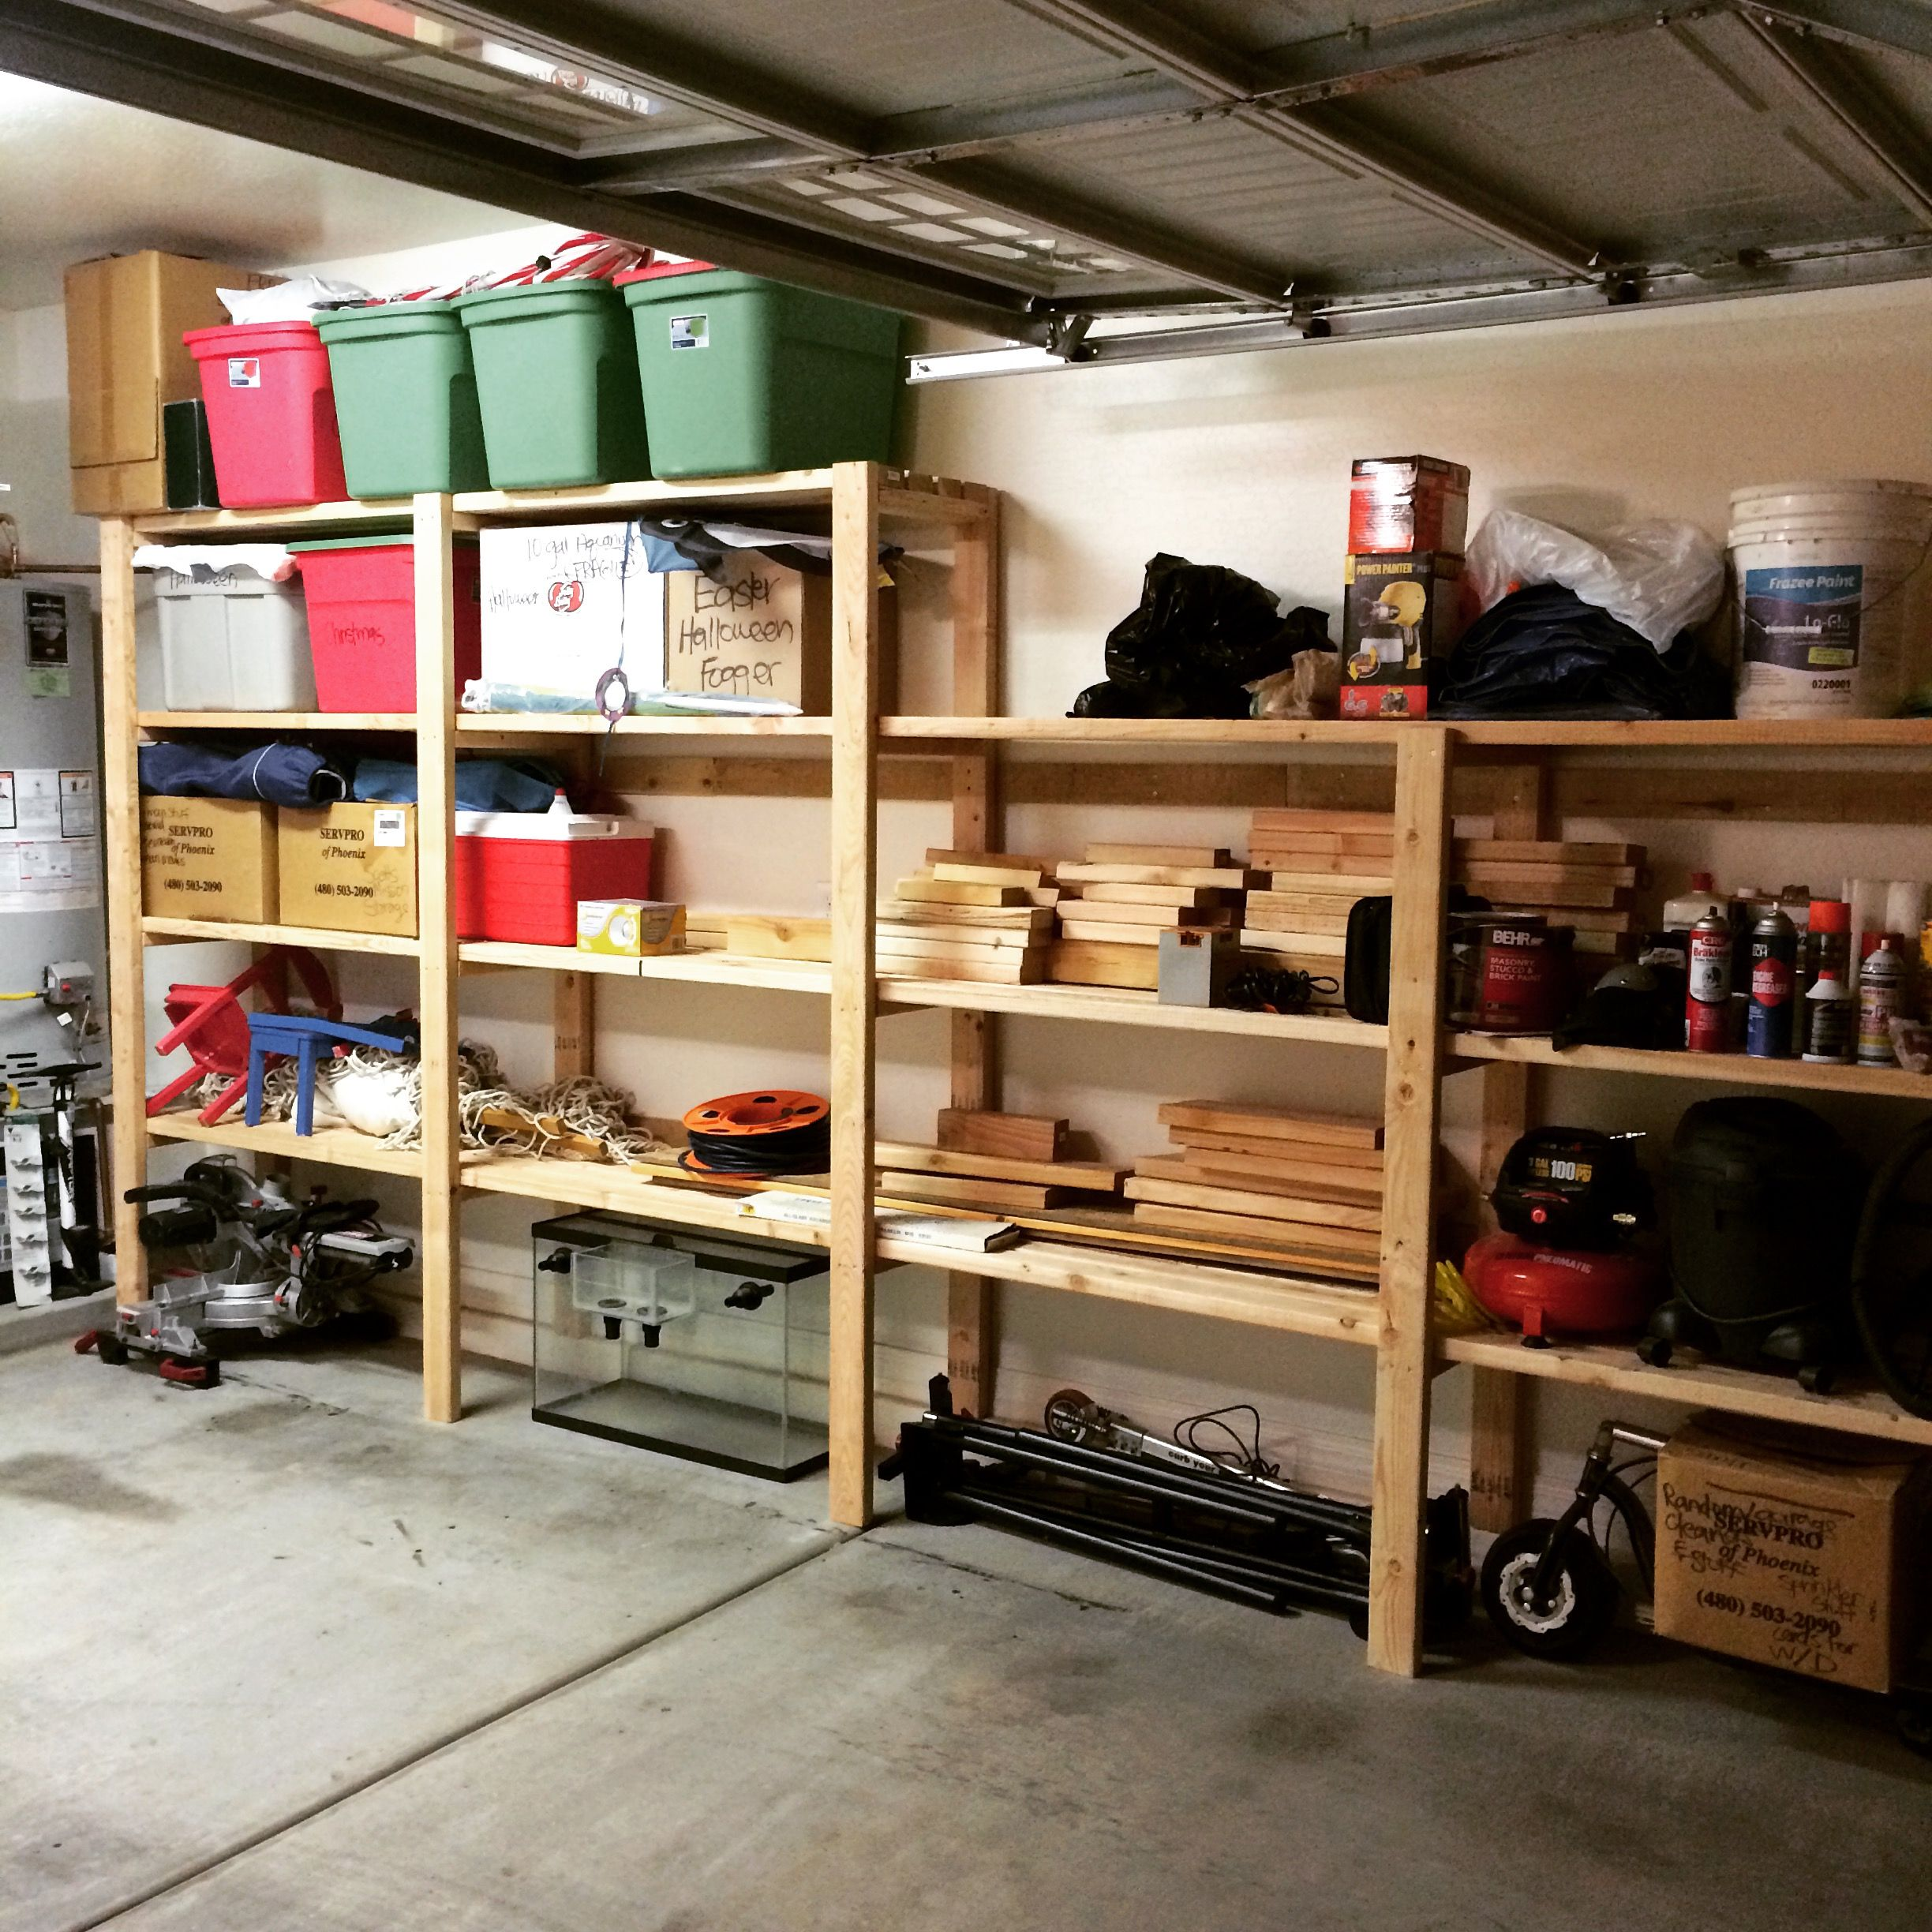 Diy Storage Shelves Basement Storage: Garage Storage Shelving Diy